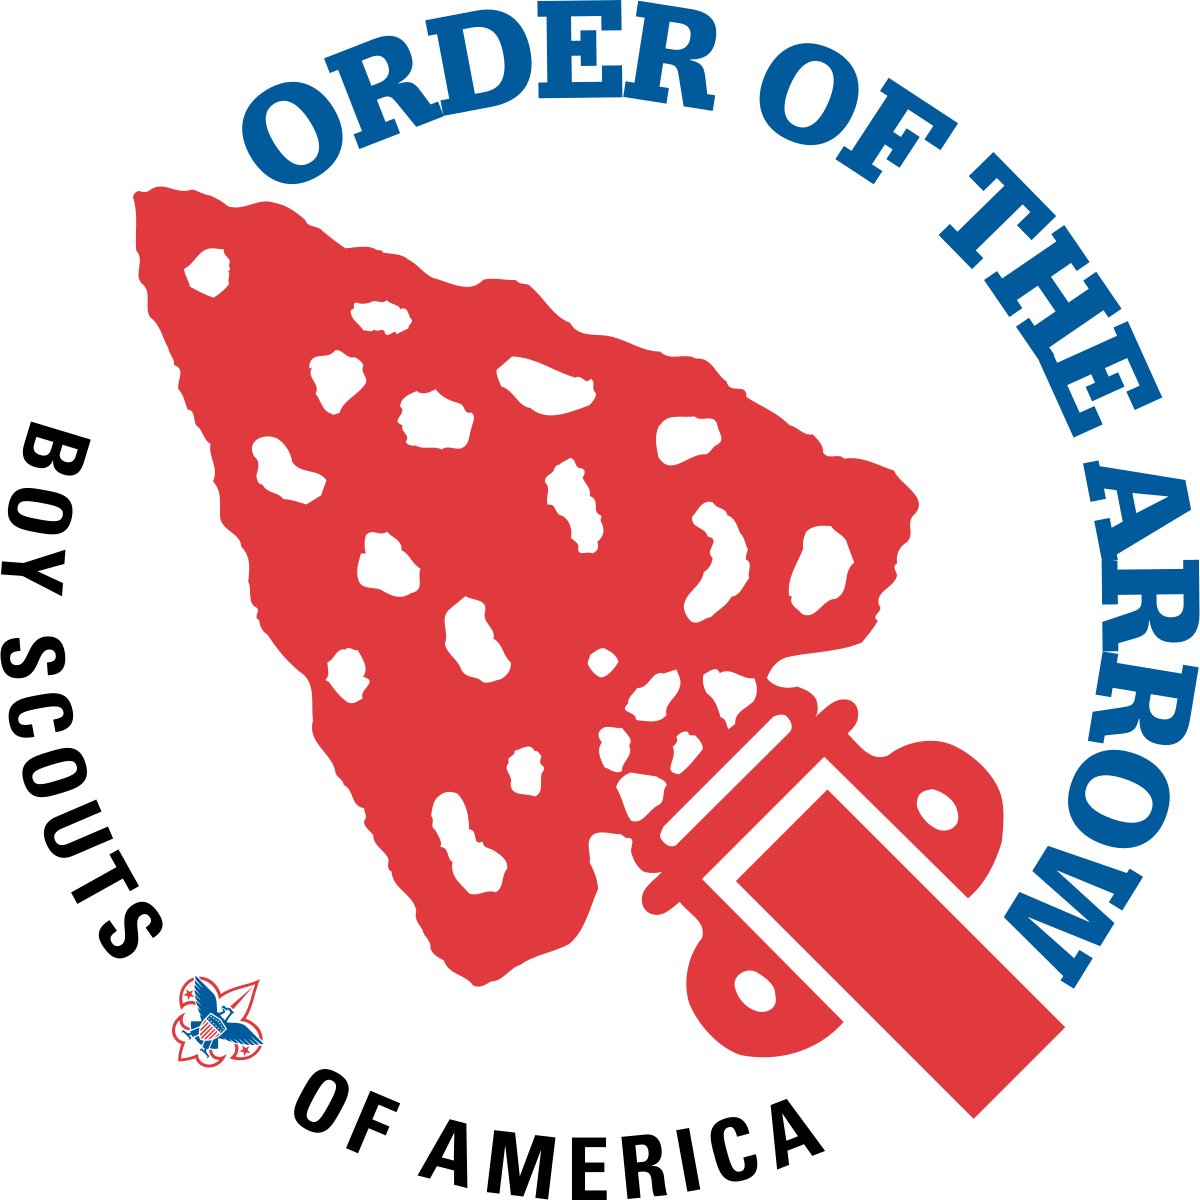 Order of the arrow. Handshake clipart brotherhood